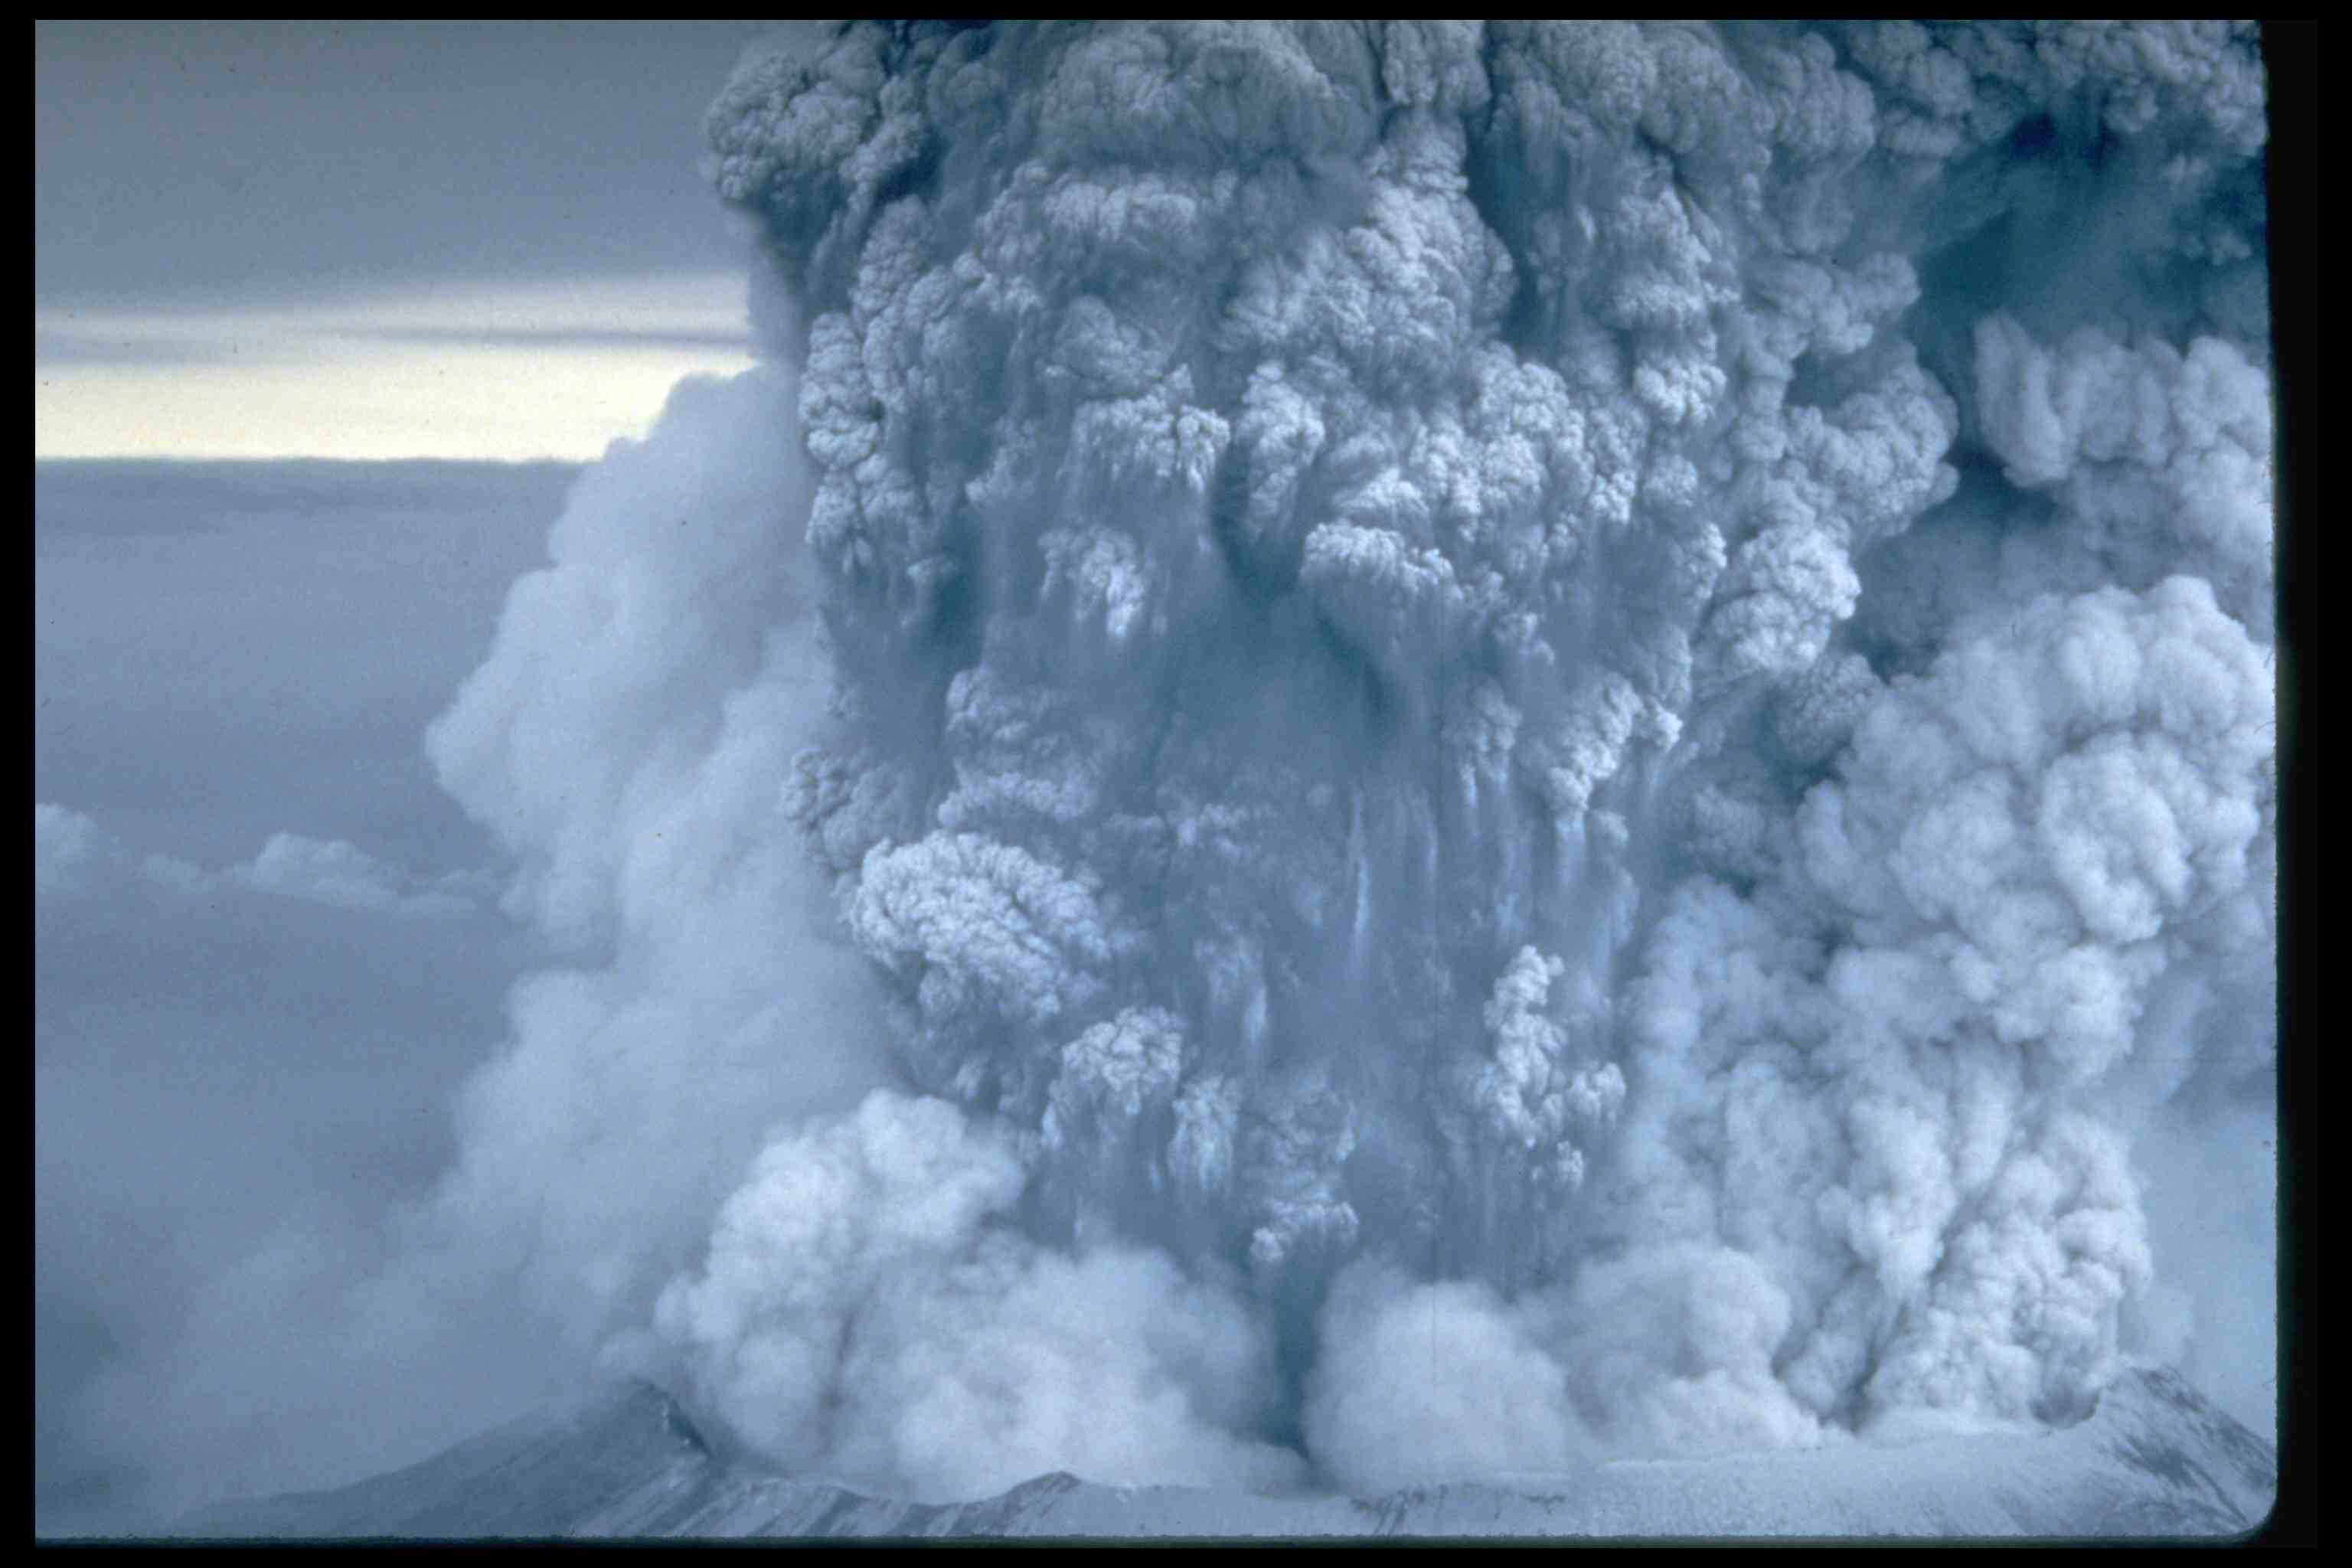 The eruption of Mt. St. Helens on May 18, 1980 blew millions of tons of ash and gas into the air. It resulted in several deaths, catastrophic flooding, fires, the destruction of nearby forests and buildings, and scattered ash for hundreds of miles around.